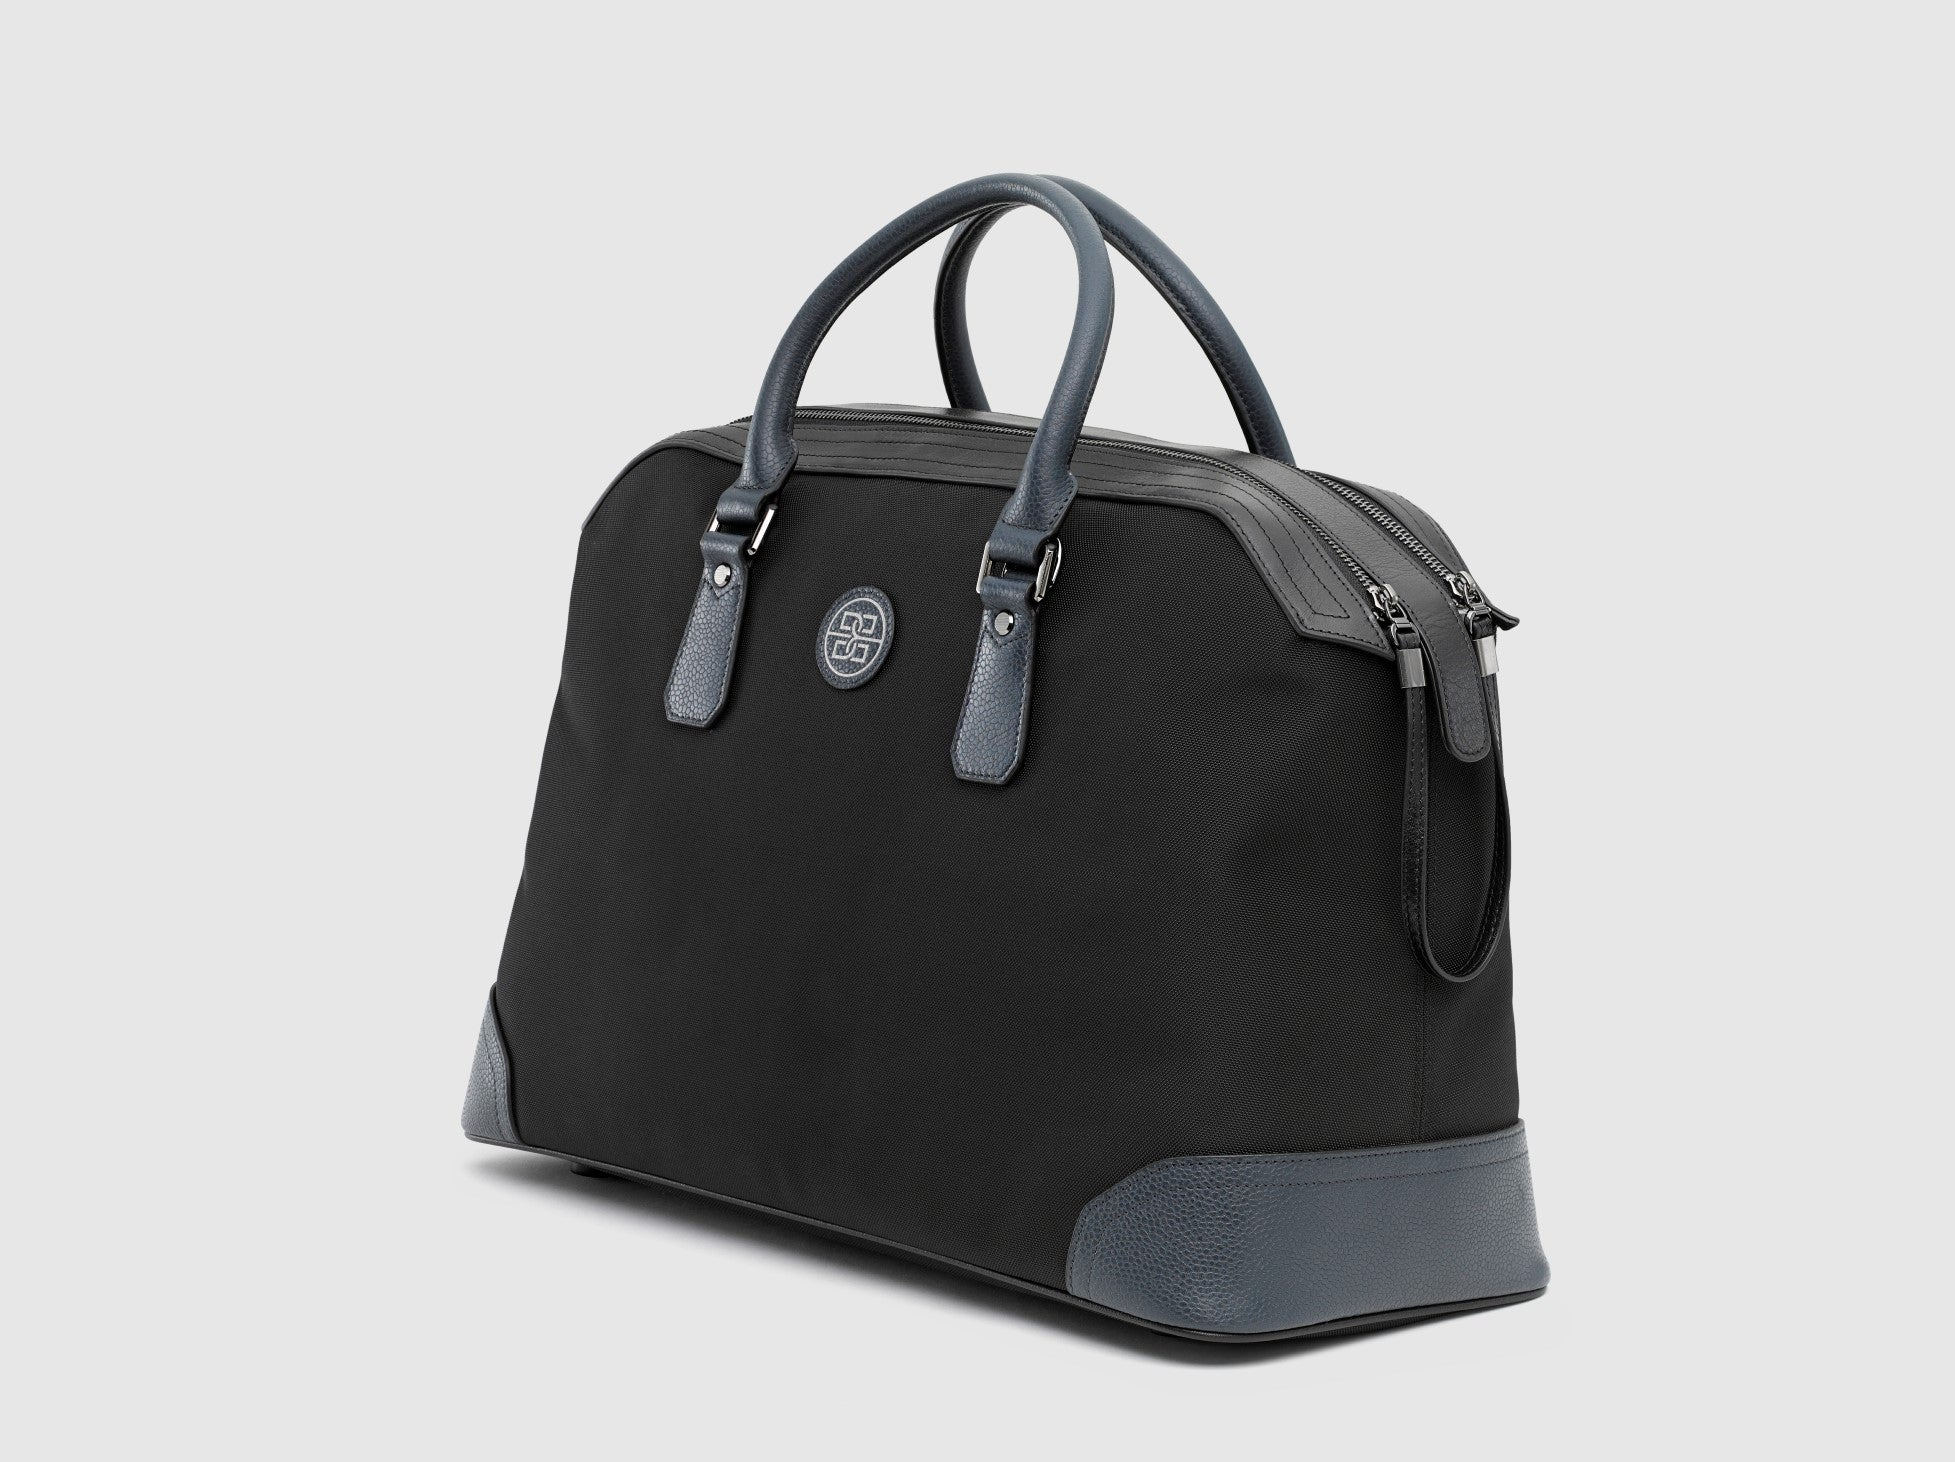 The Ivens Travel Bag in Nylon and Leather